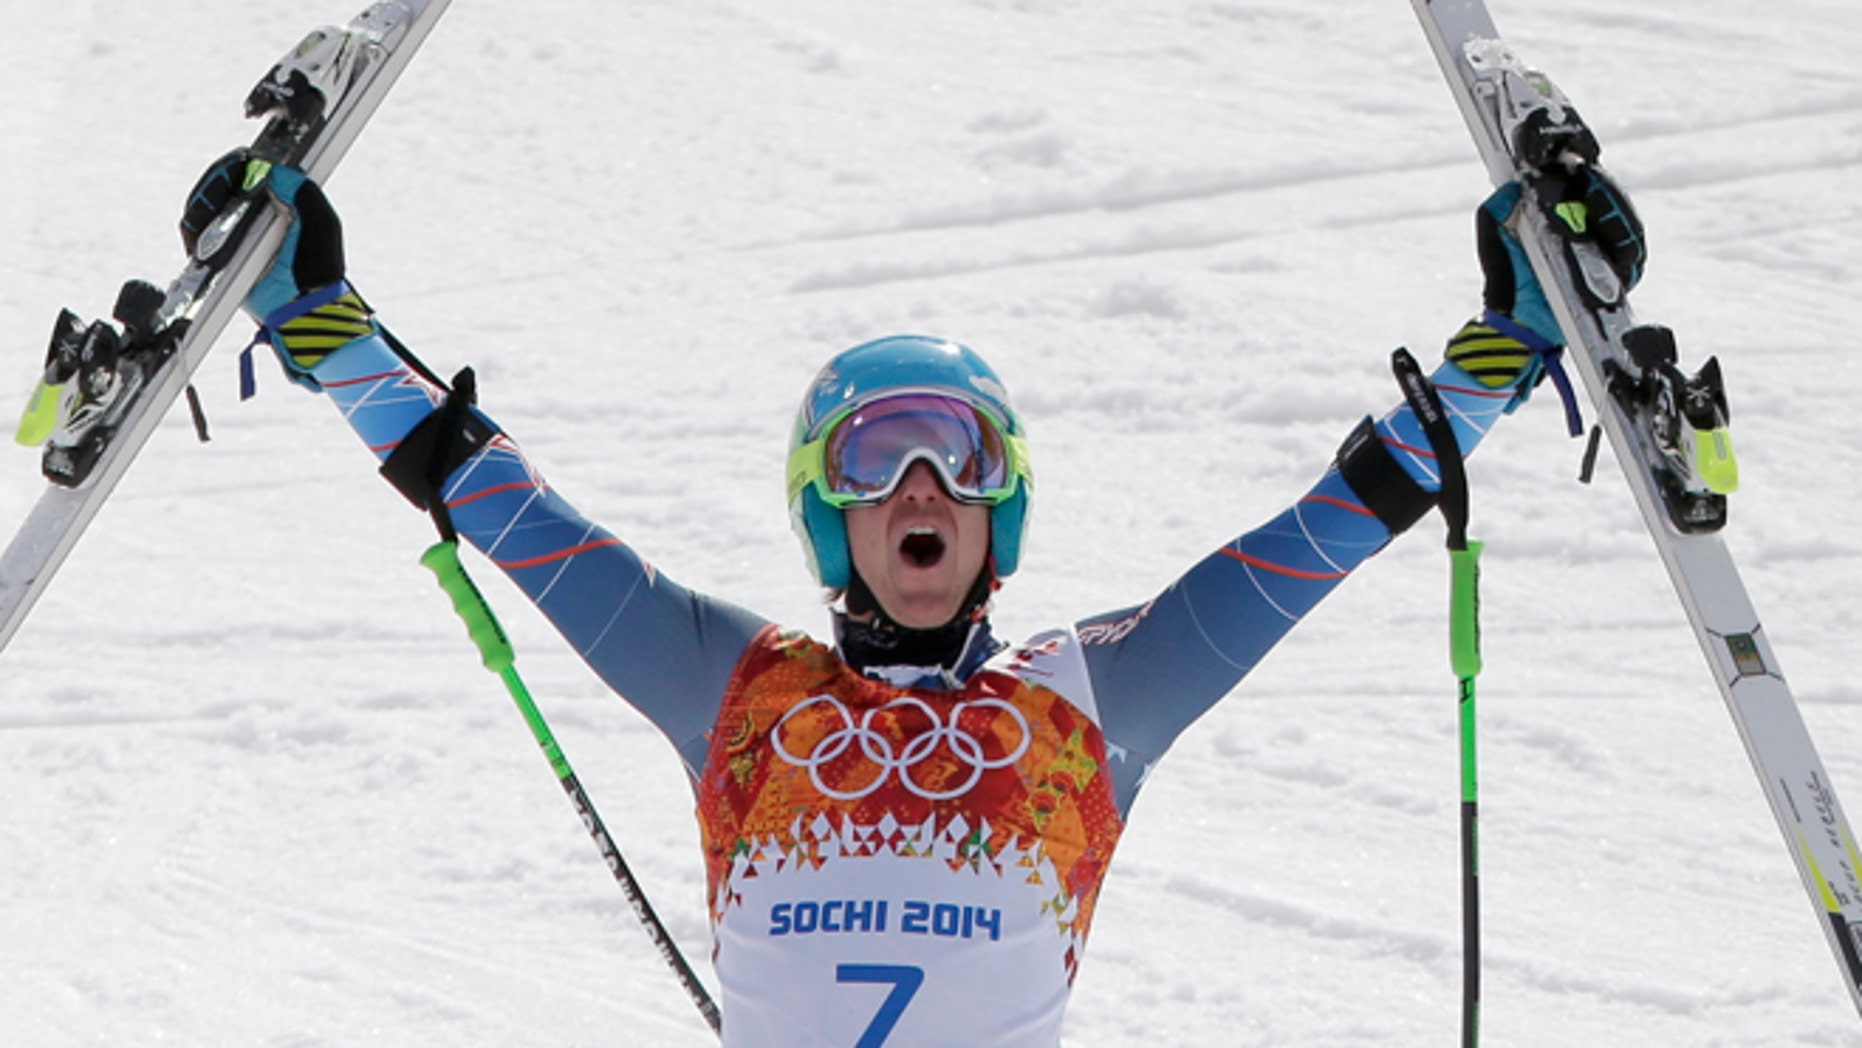 Feb. 19, 2014: United States' Ted Ligety celebrates after winning the gold medal in the men's giant slalom at the Sochi 2014 Winter Olympics in Krasnaya Polyana, Russia.